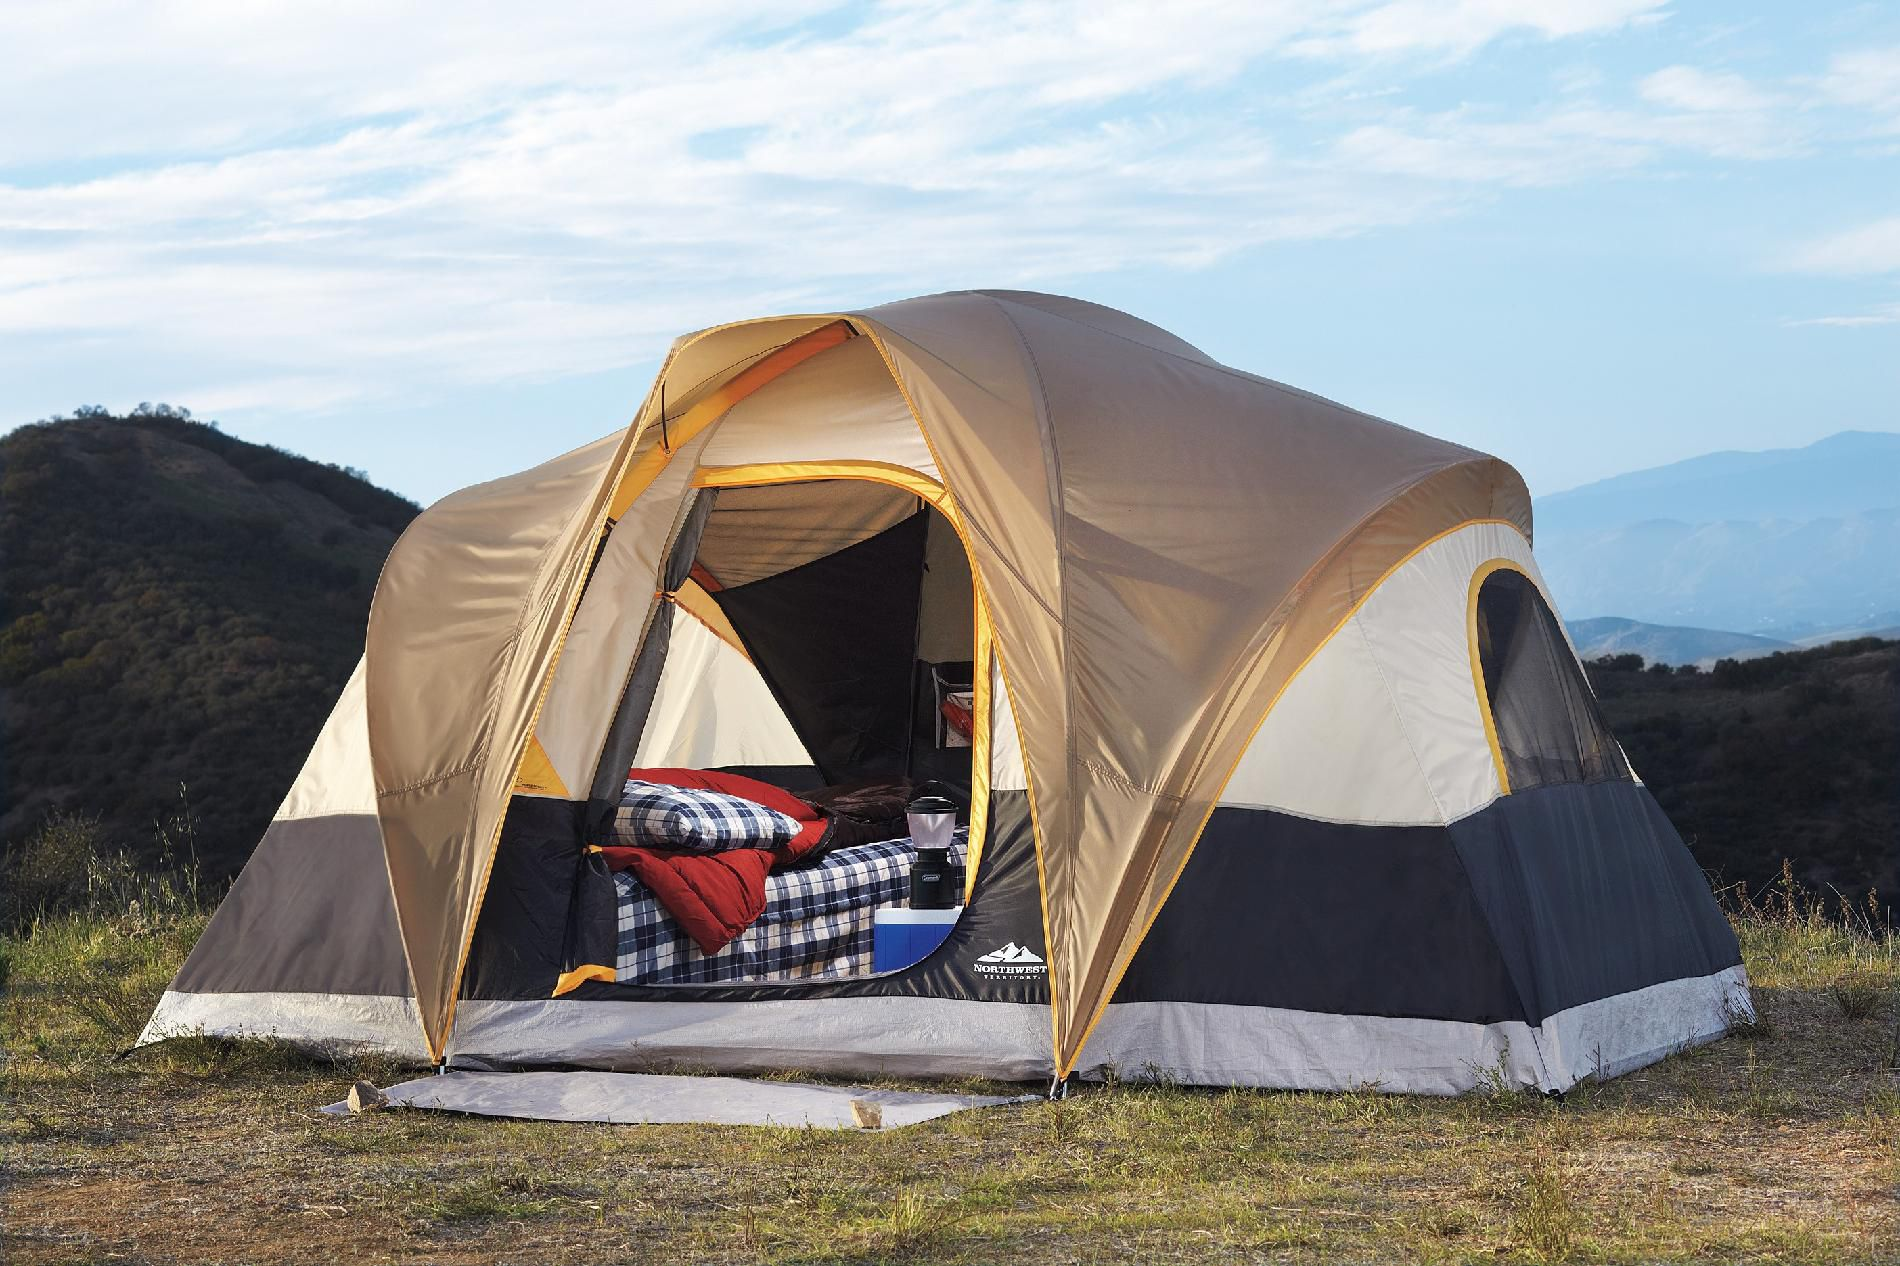 Northwoods 6-person tent                                                                                                         at mygofer.com